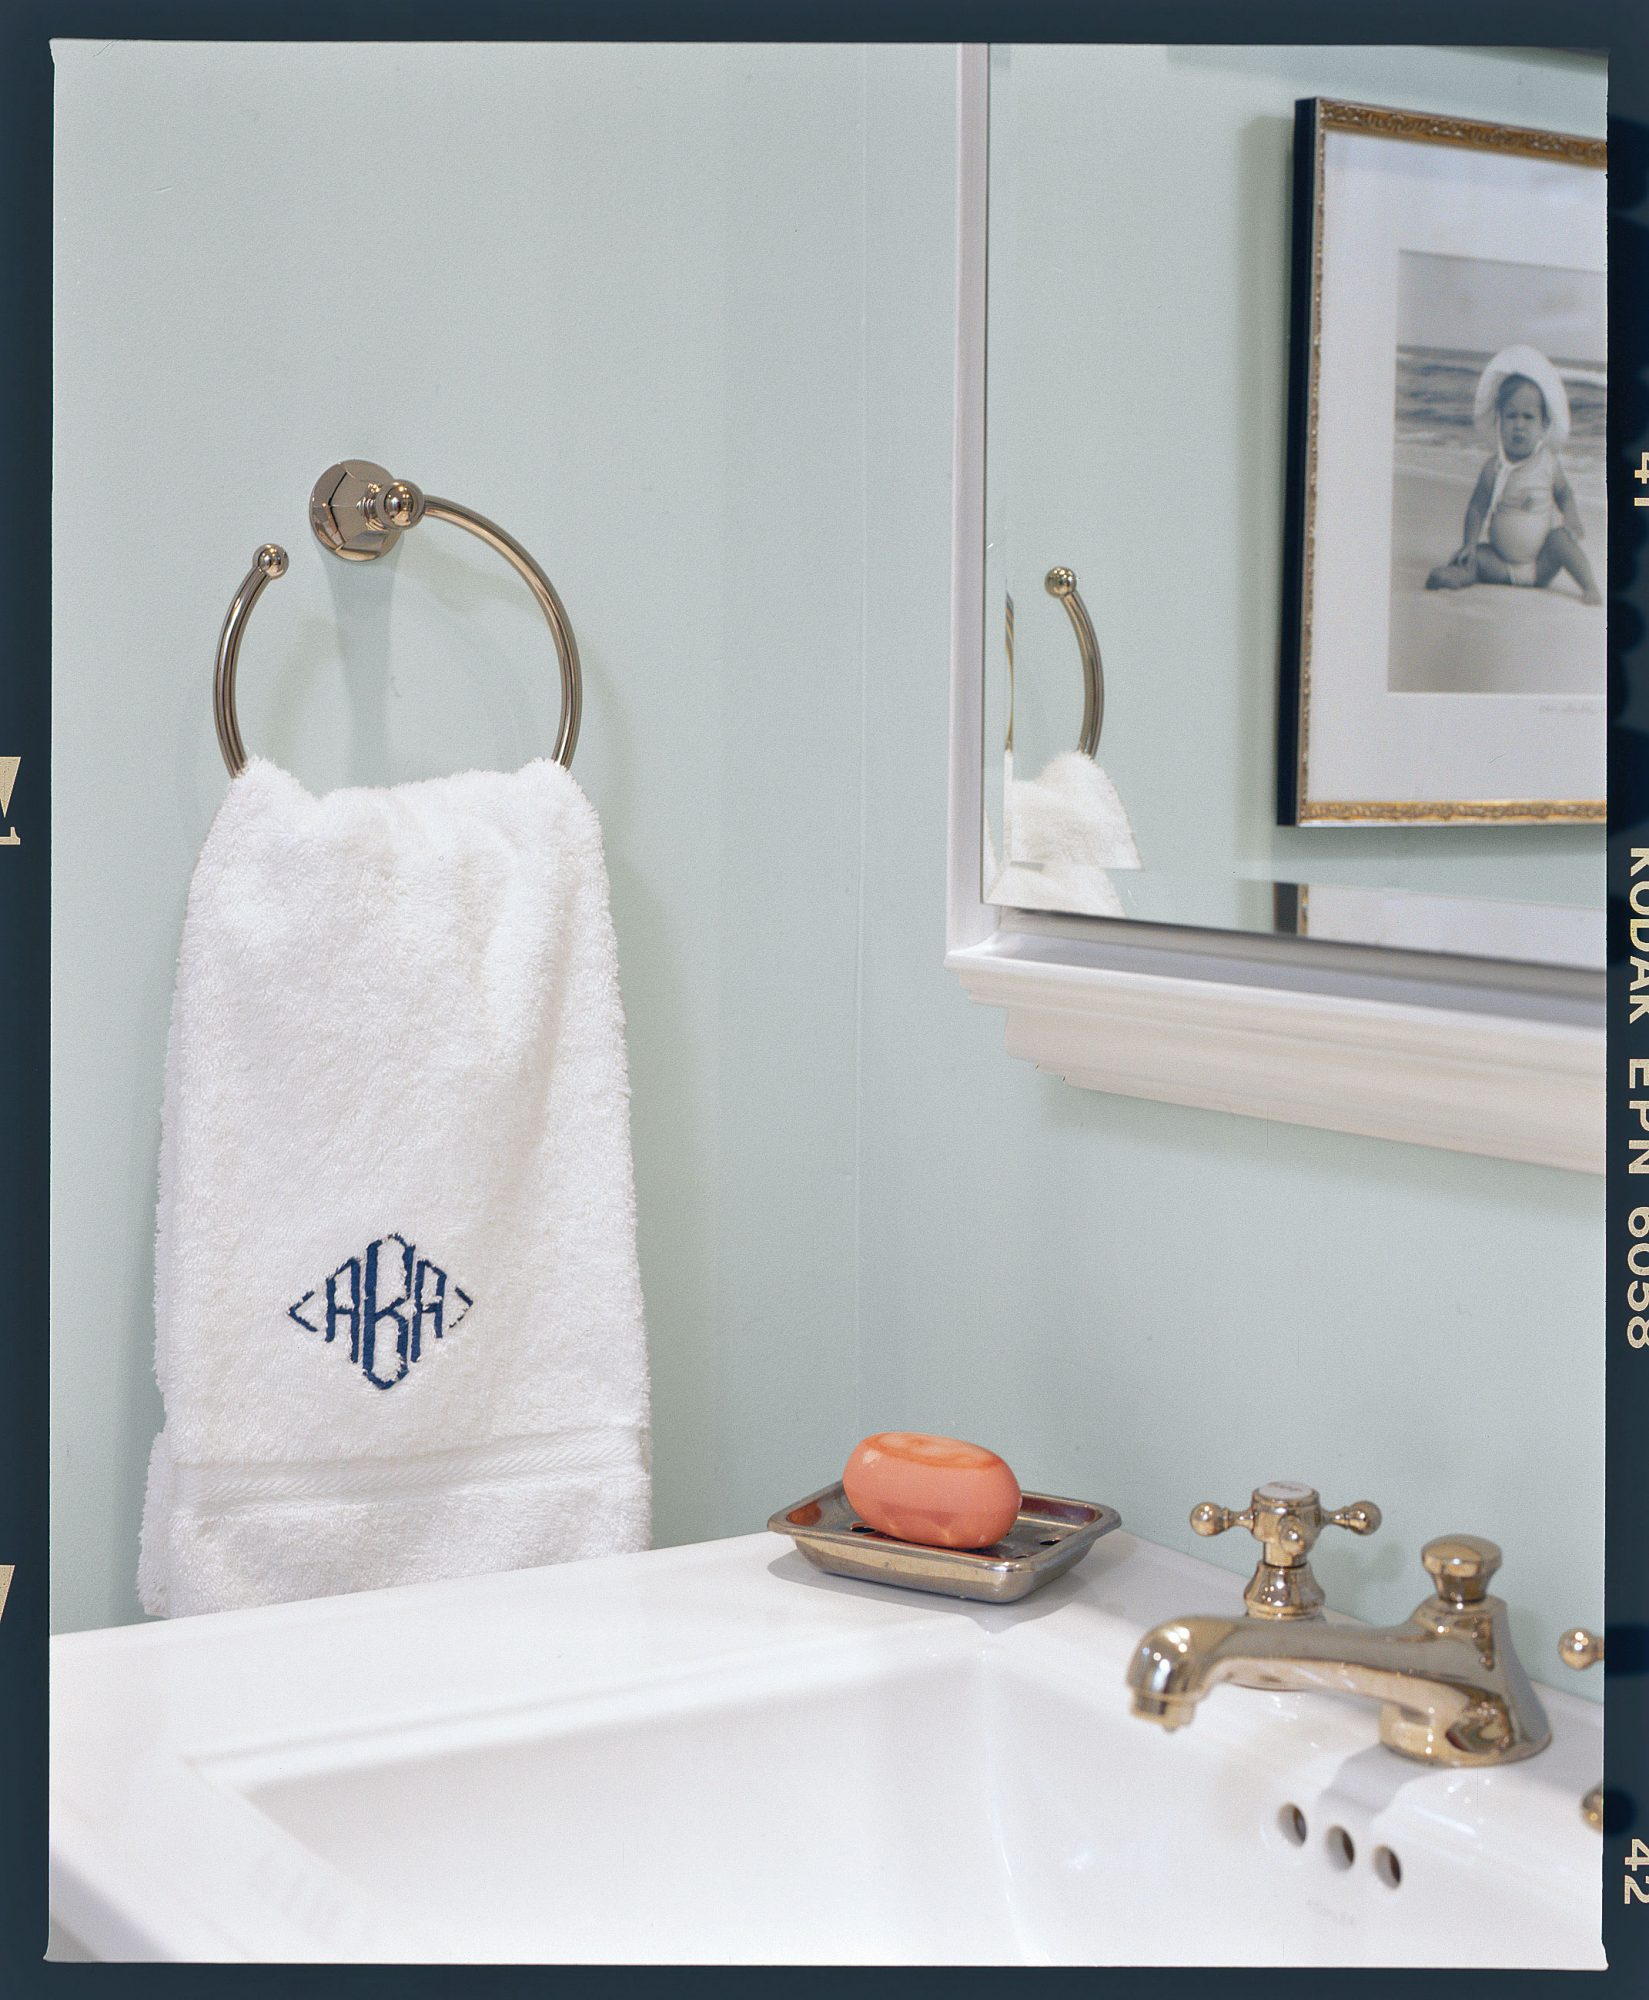 Makeover Tips for Your Bath